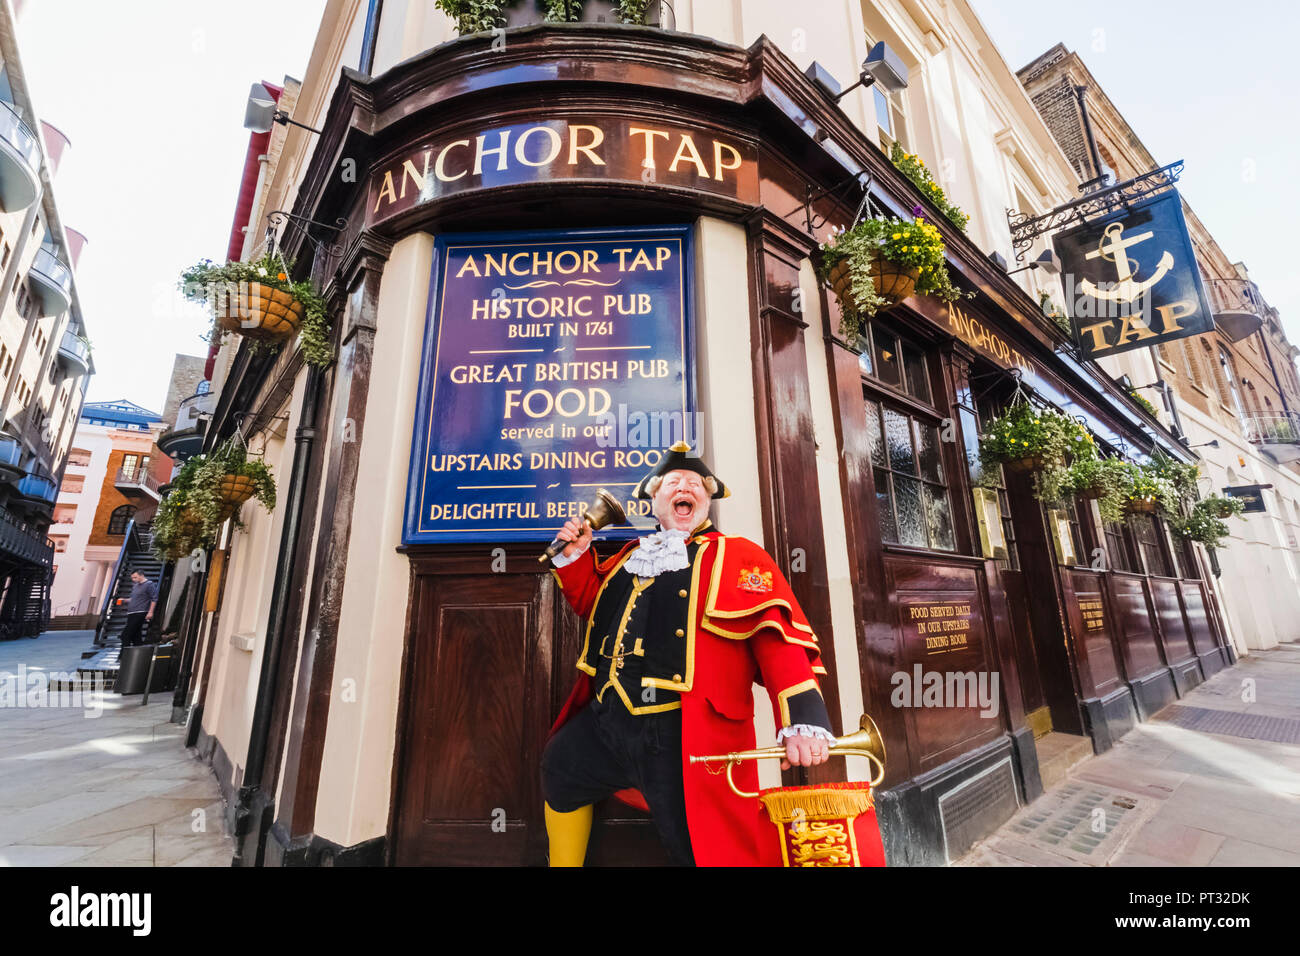 England, London, Southwark, Anchor Tap Pub and Town Crier - Stock Image